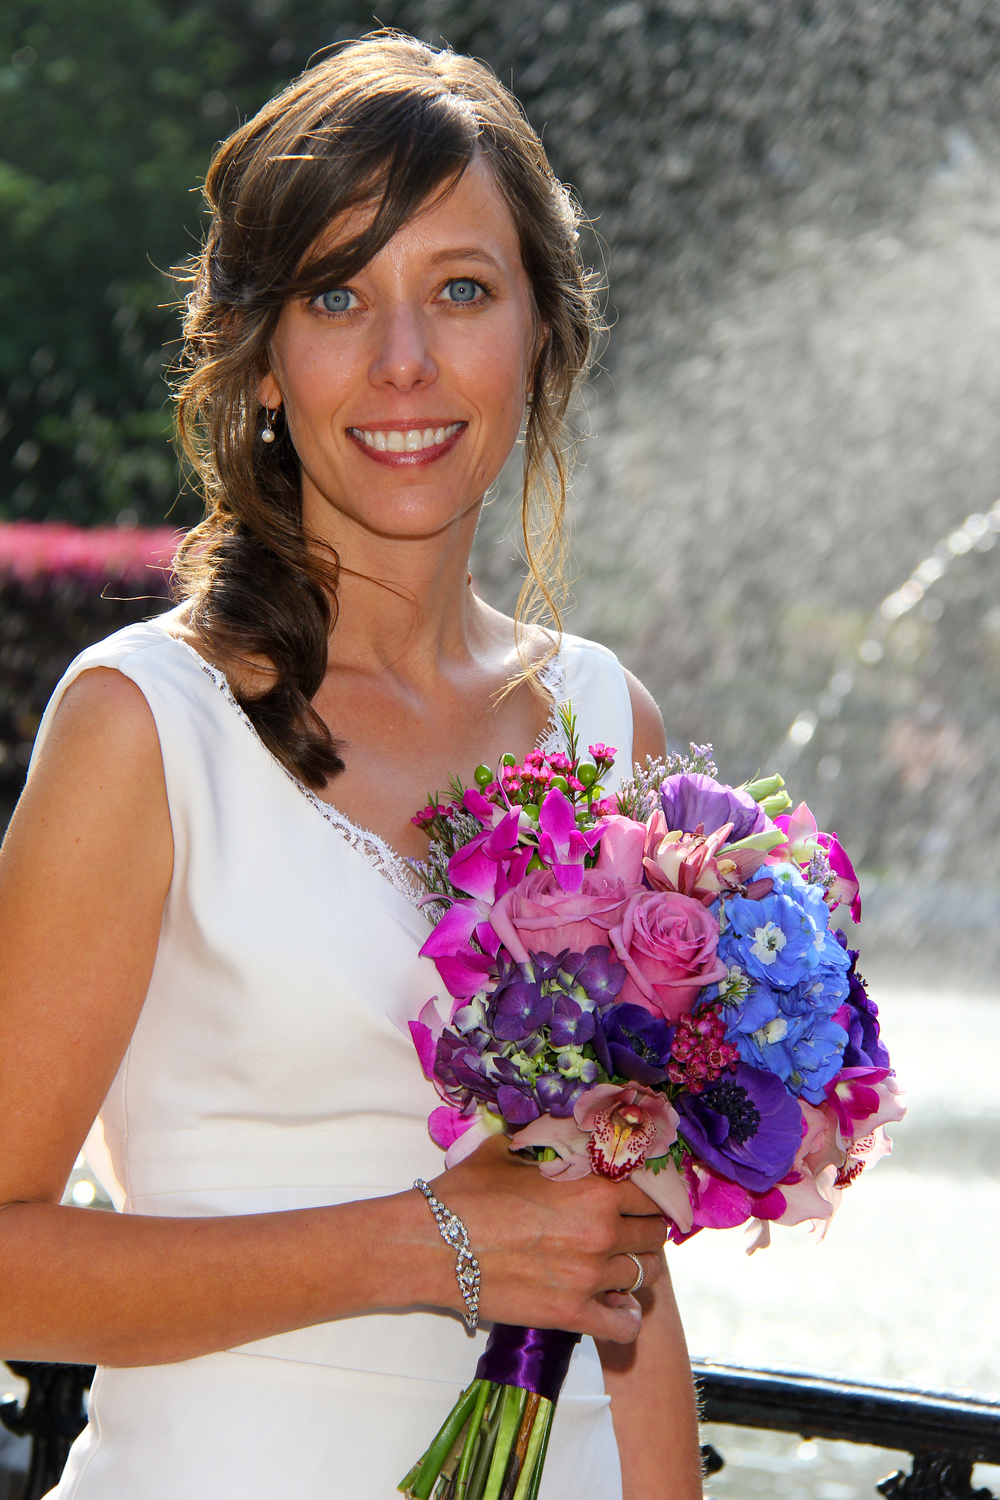 Savannah GA Wedding Forsyth Park fountain Brides bouquet